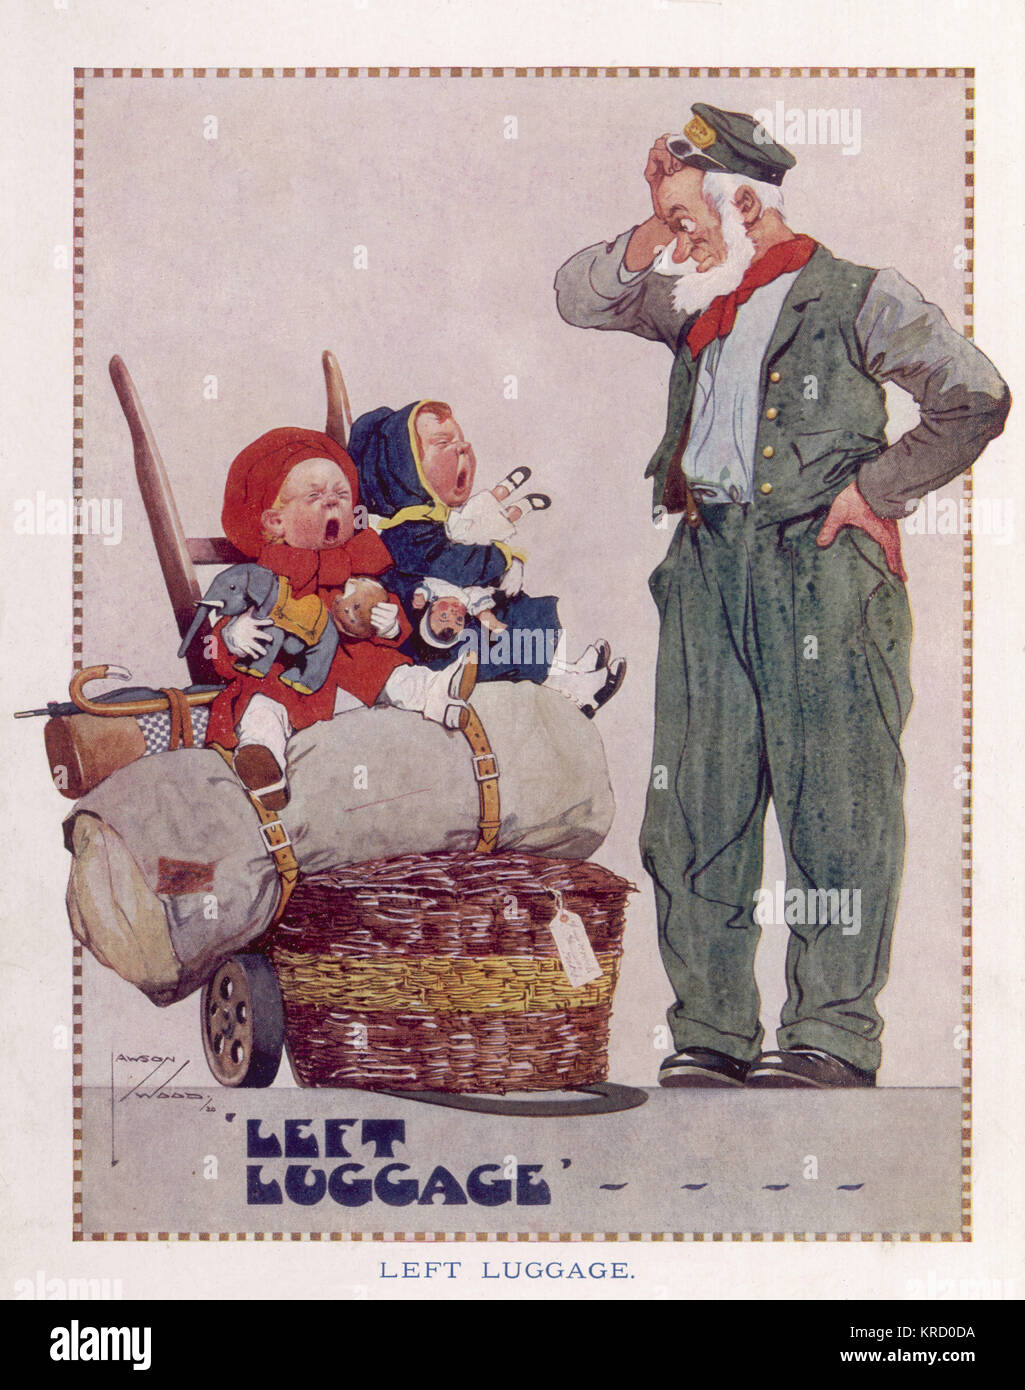 Oh, Mr Porter, what shall we do?   Mummy's off to Birmingham  And left us in Crewe  Bundled in a barrow,  Crying - Stock Image